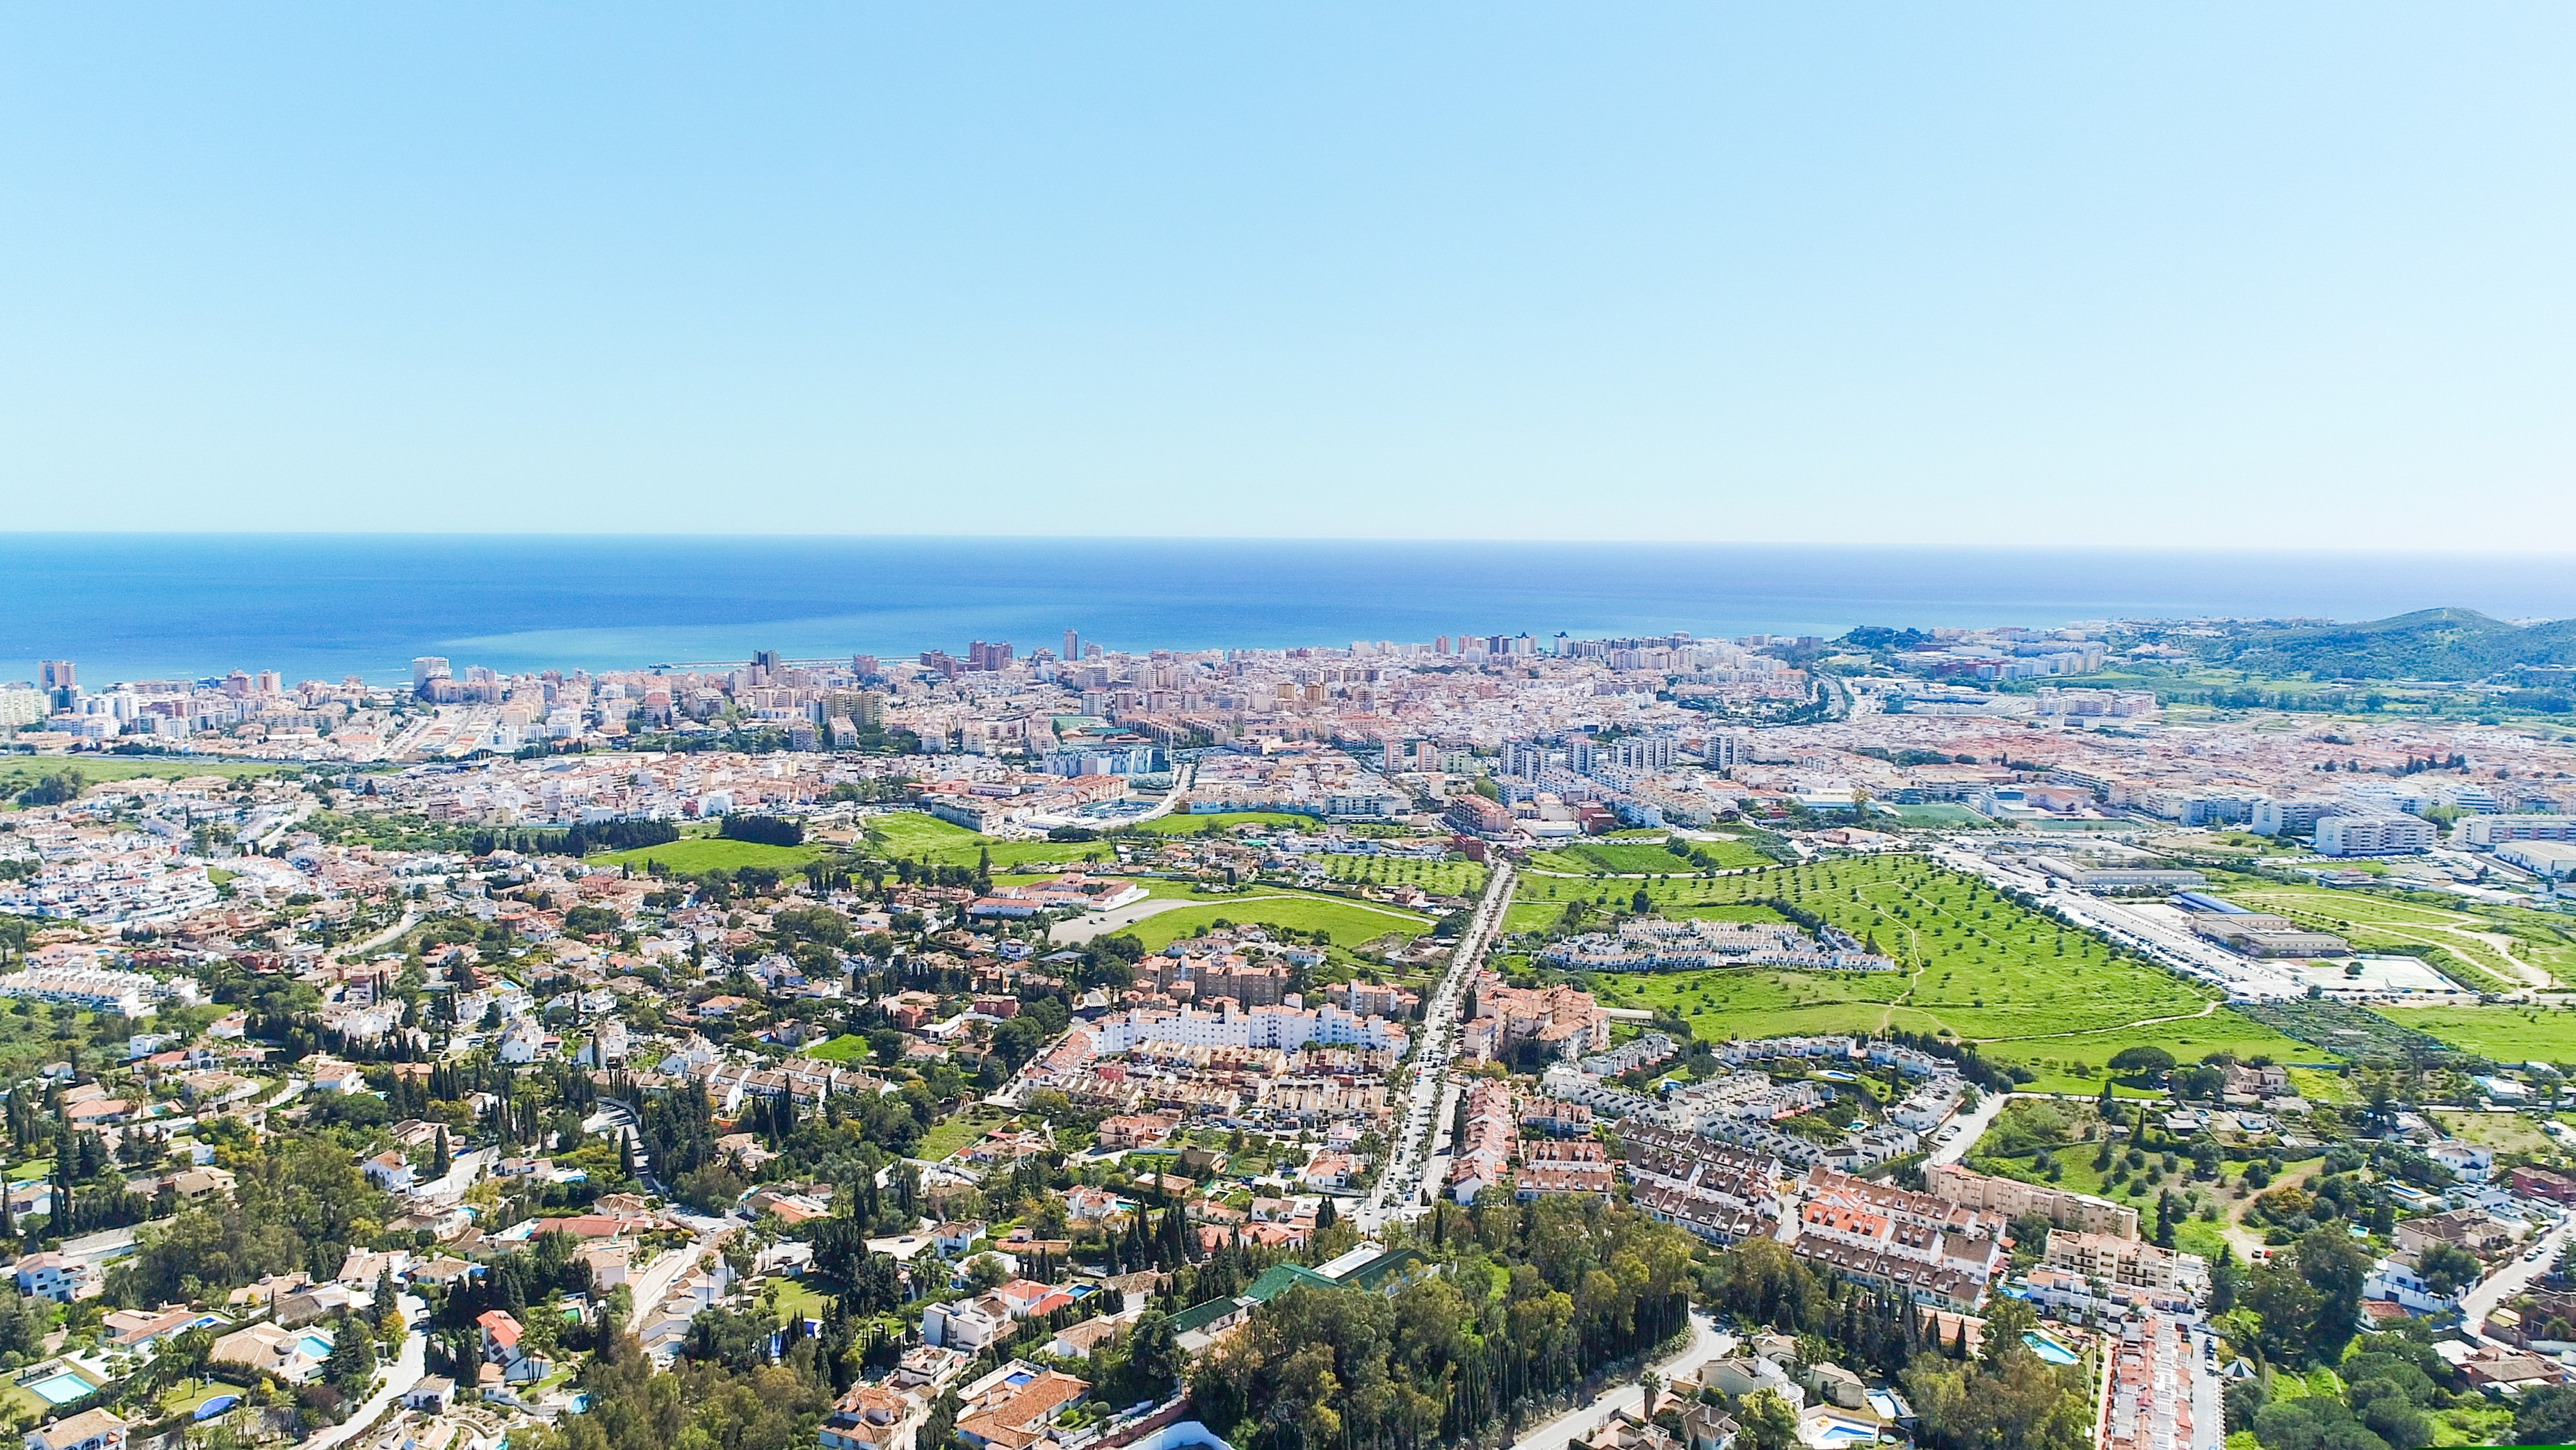 How to buy a property in Marbella from abroad directly from the developer?